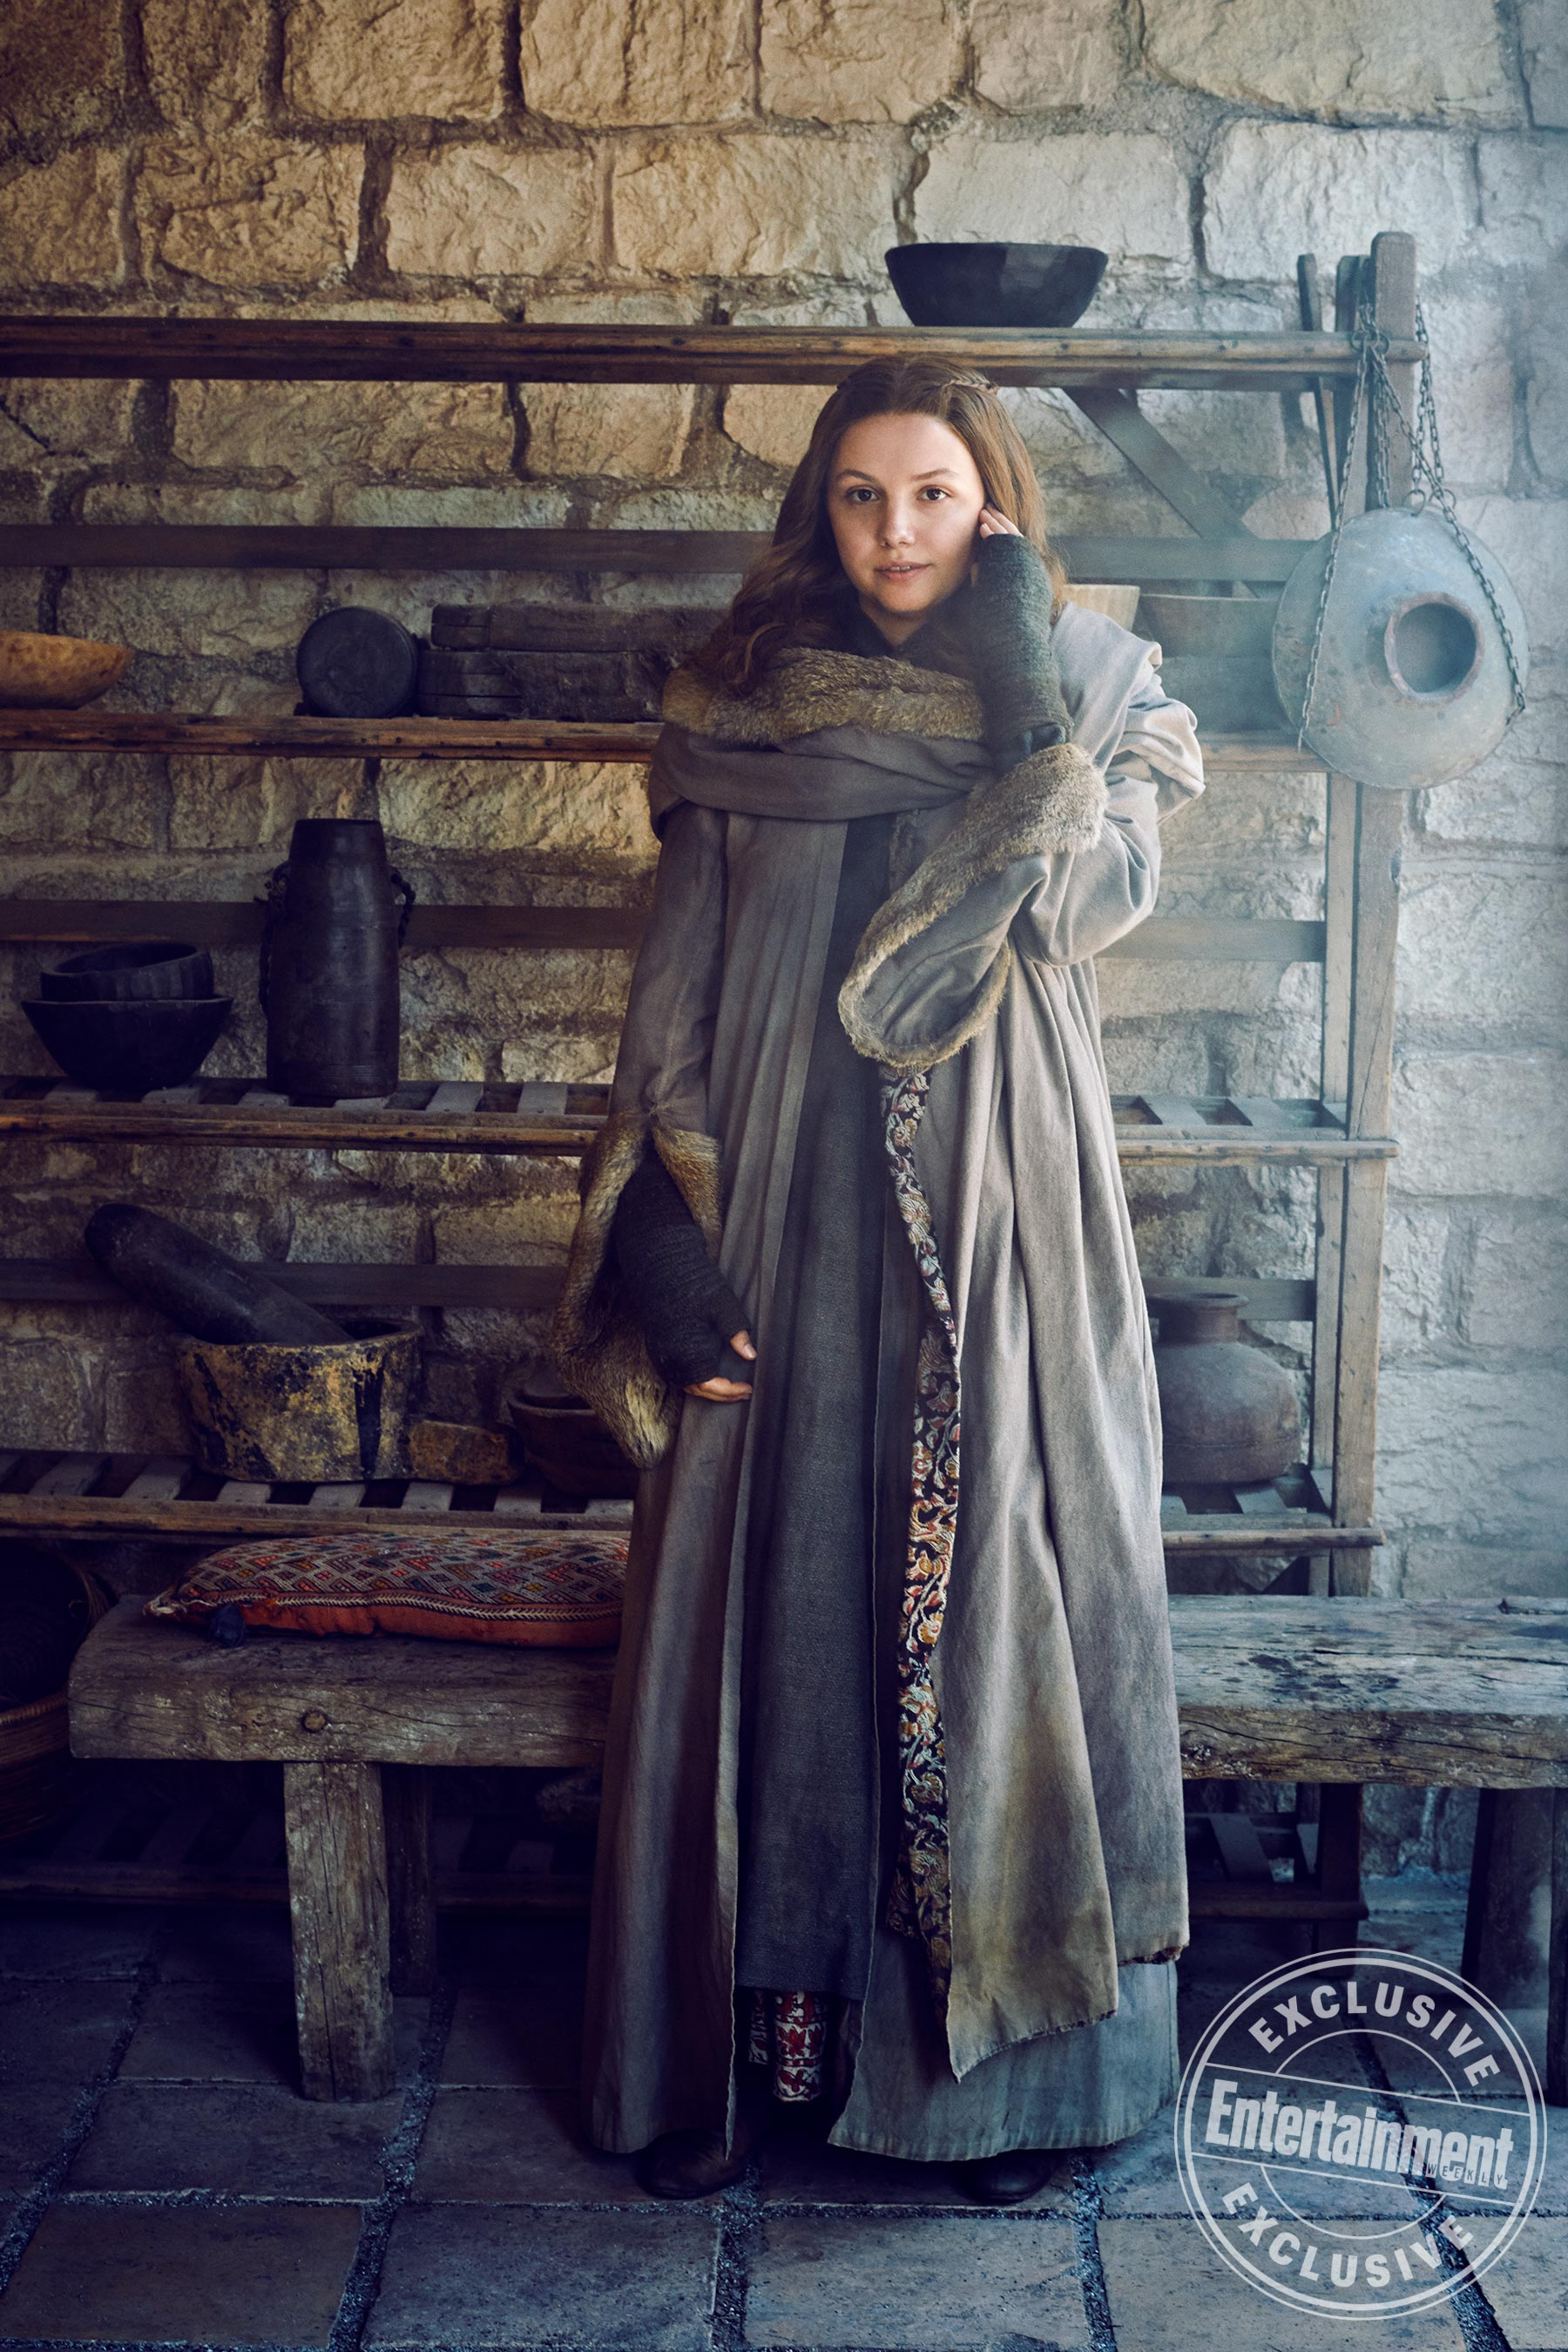 Entertainment Weekly Photoshoot - 2019 - Hannah Murray as Gilly